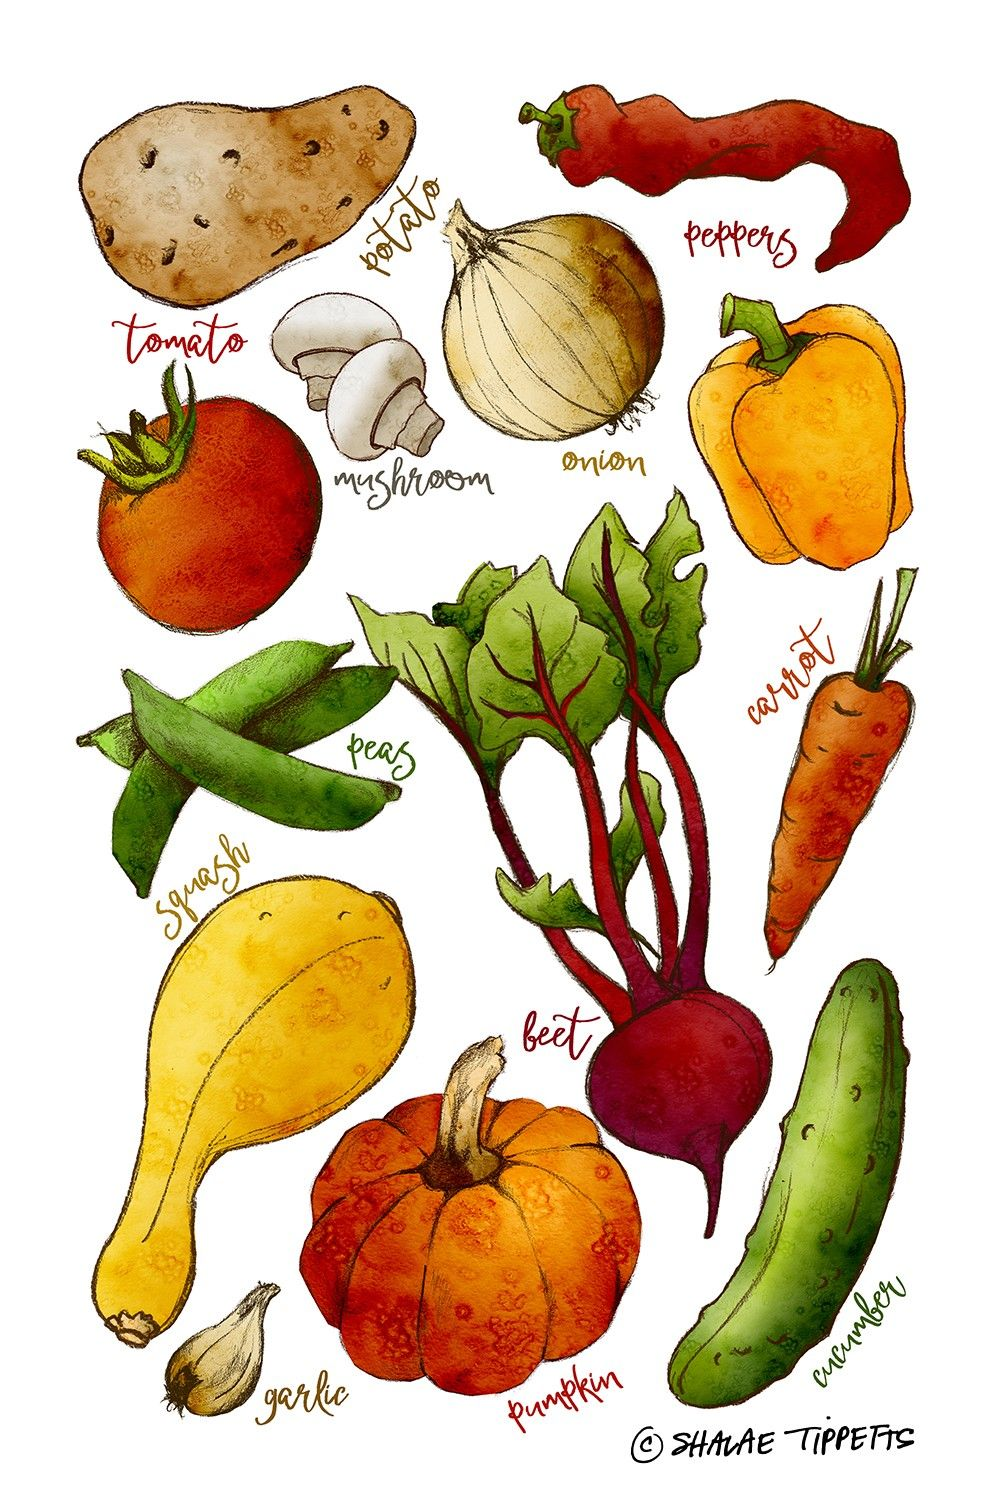 Squash Carrots Corn Peppers Onions Kitchen Photo Wall Picture 8x10 Art Print